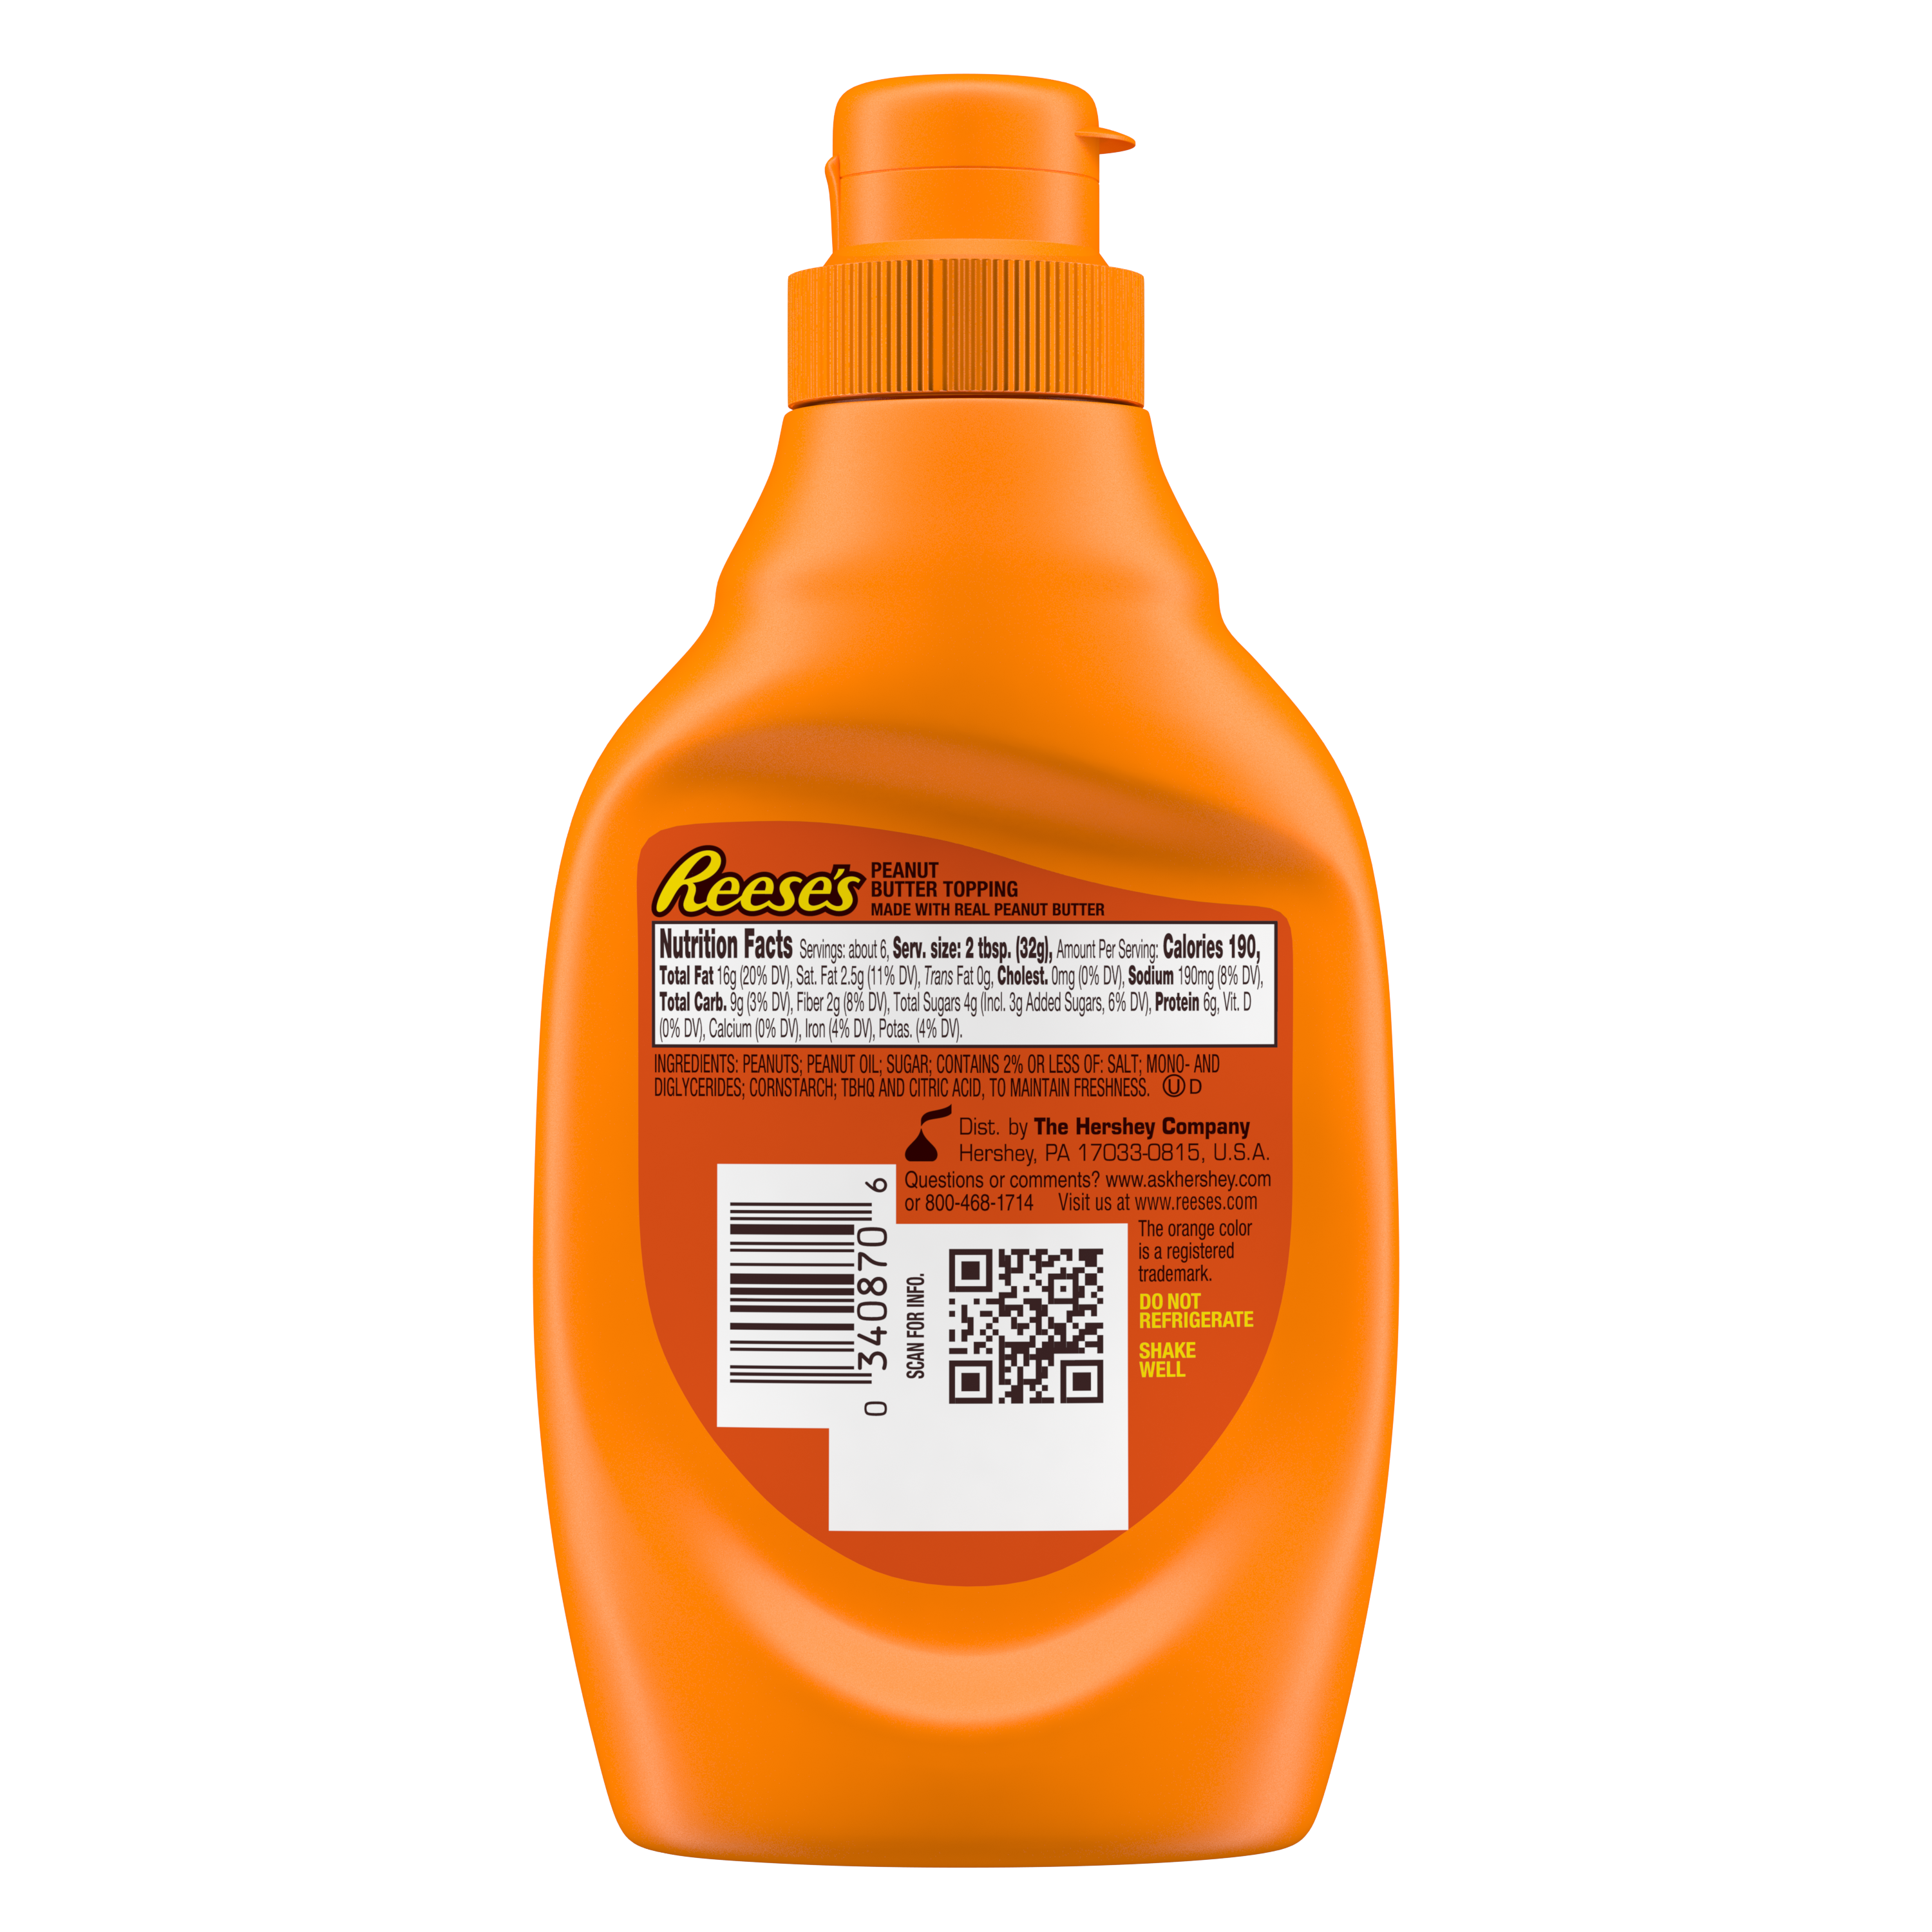 REESE'S Peanut Butter Topping, 7 oz bottle - Back of Package